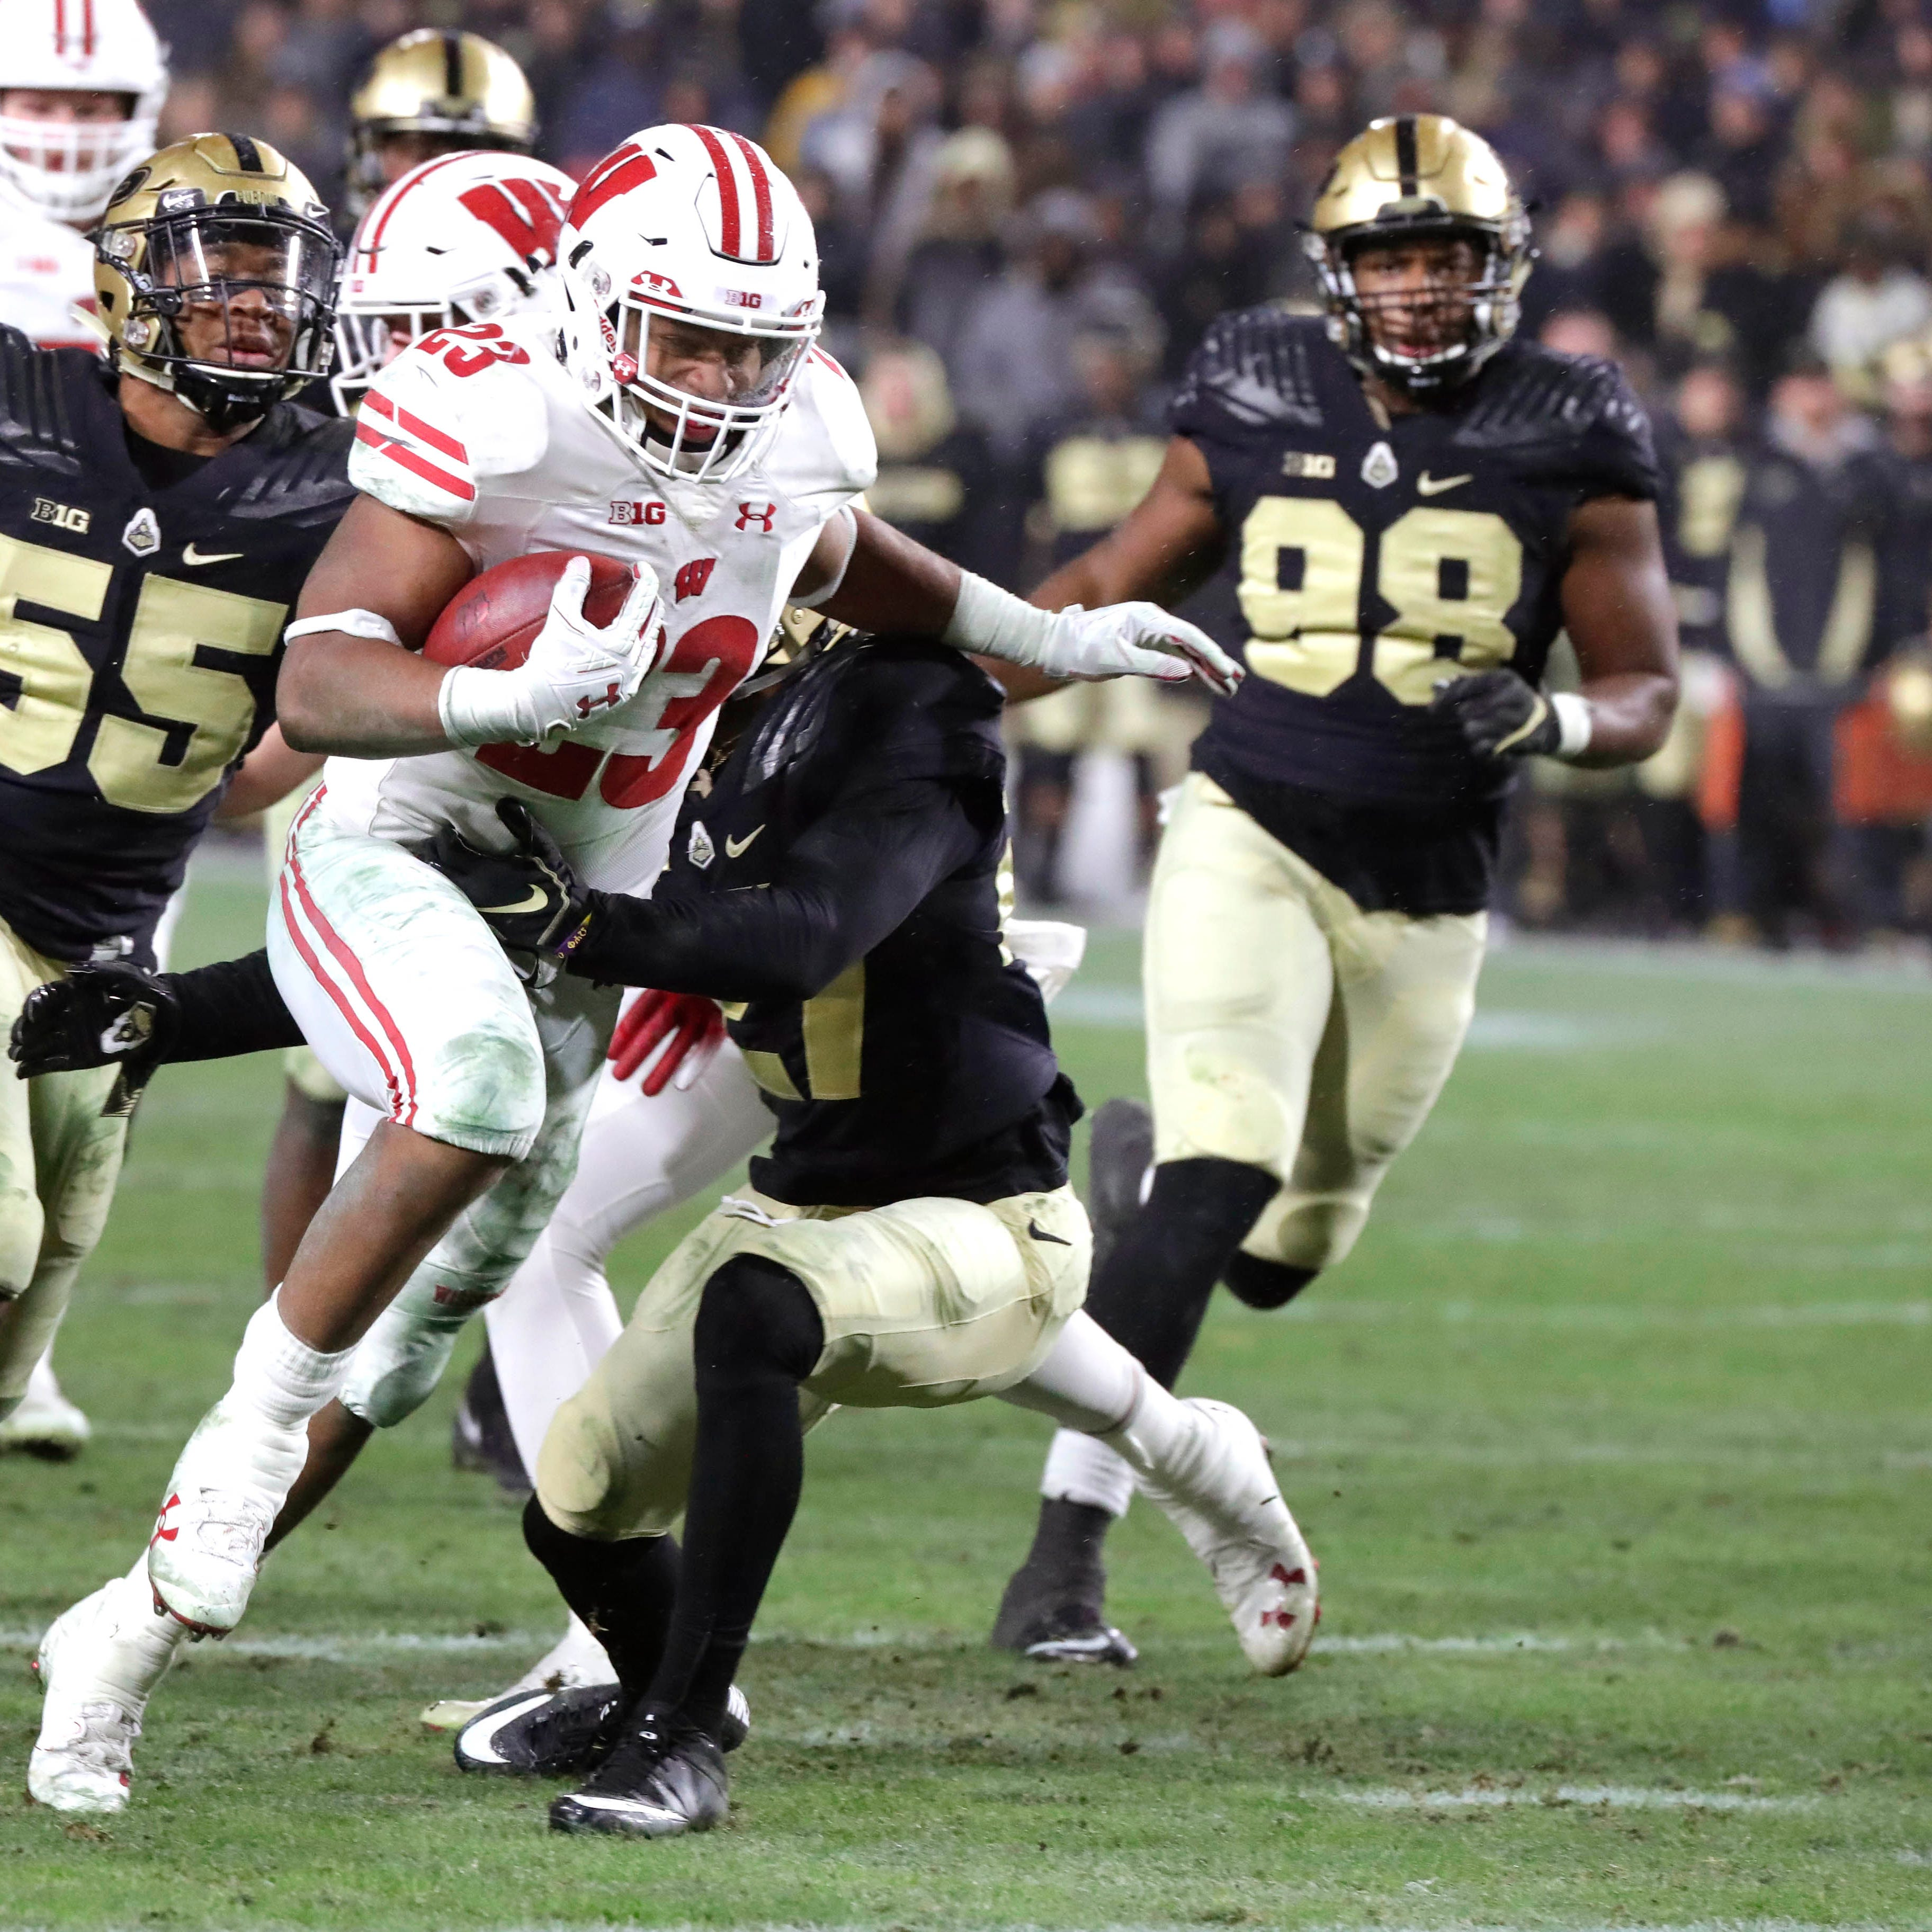 UW 47, Purdue 44 (3 OT): Jonathan Taylor lifts Badgers in extra sessions